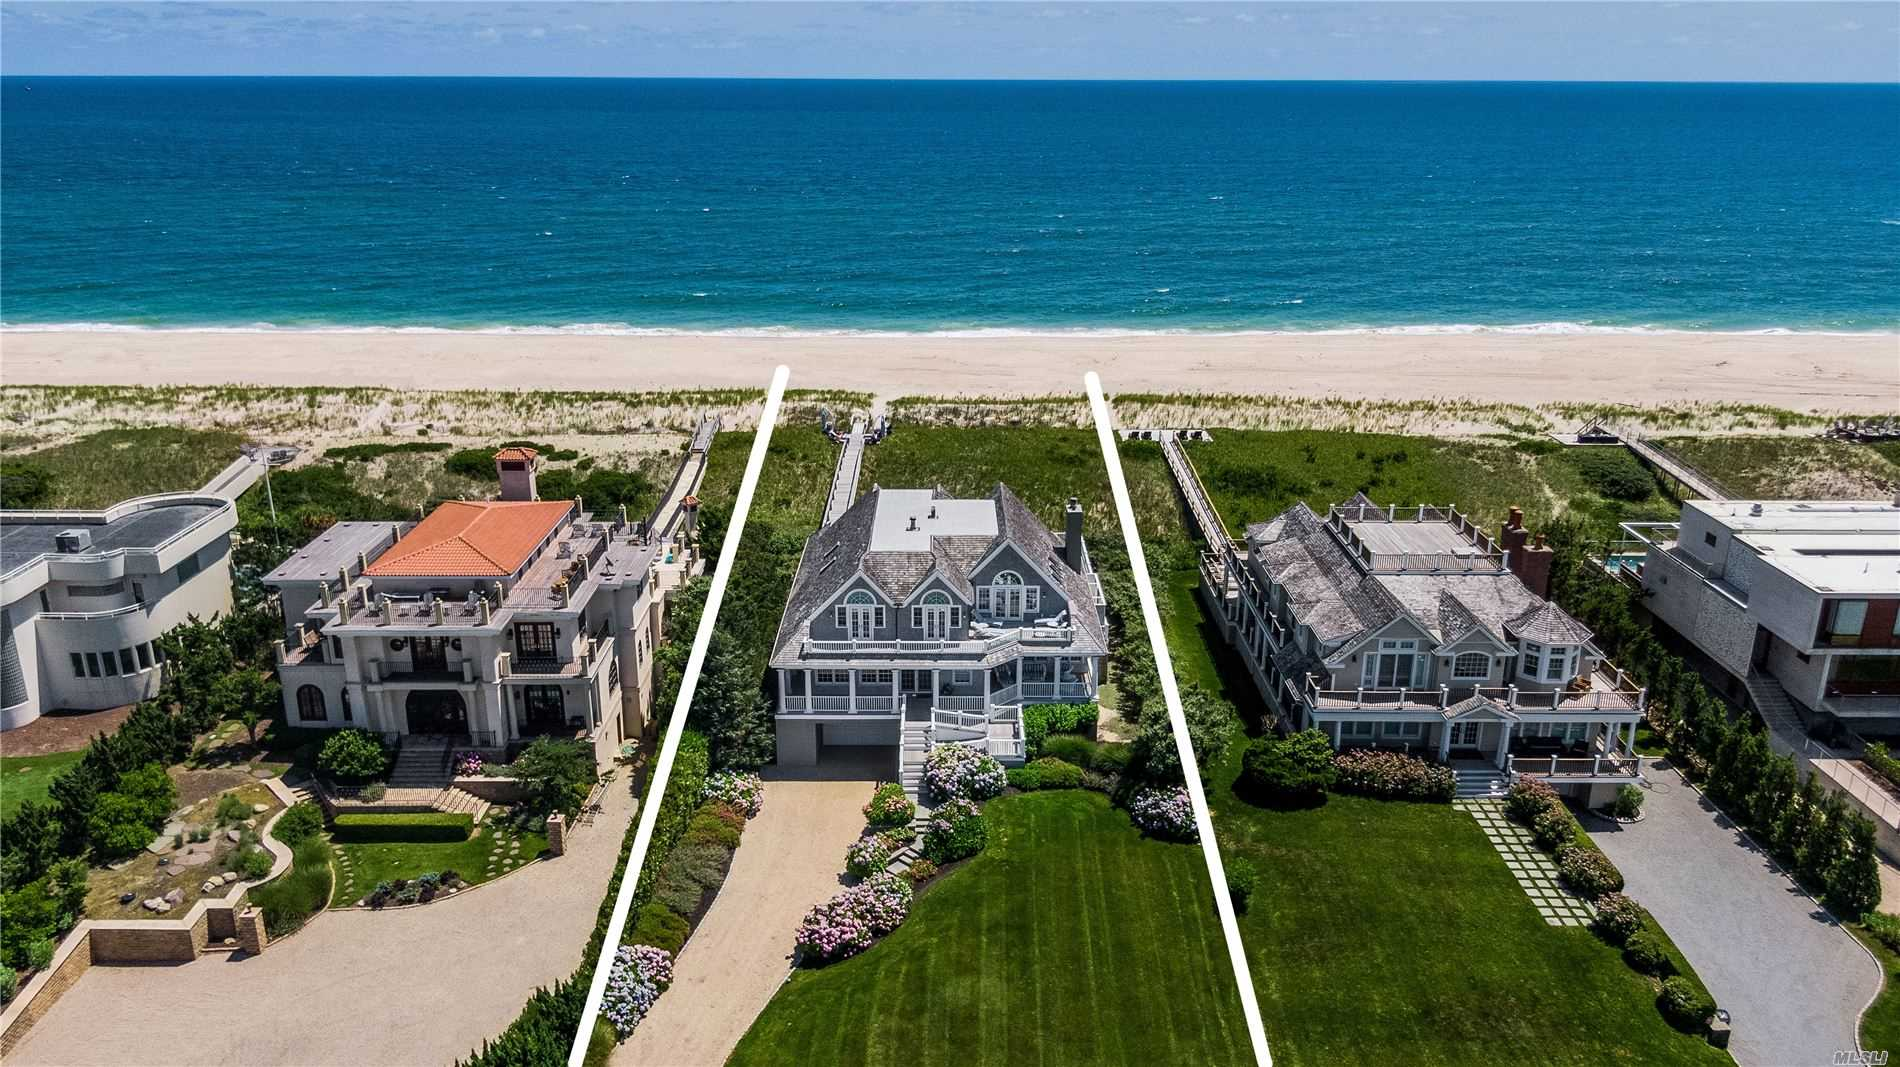 47 Dune Rd, E. Quogue, New York 11942, 6 Bedrooms Bedrooms, ,6 BathroomsBathrooms,Residential,For Sale,Dune,3237122